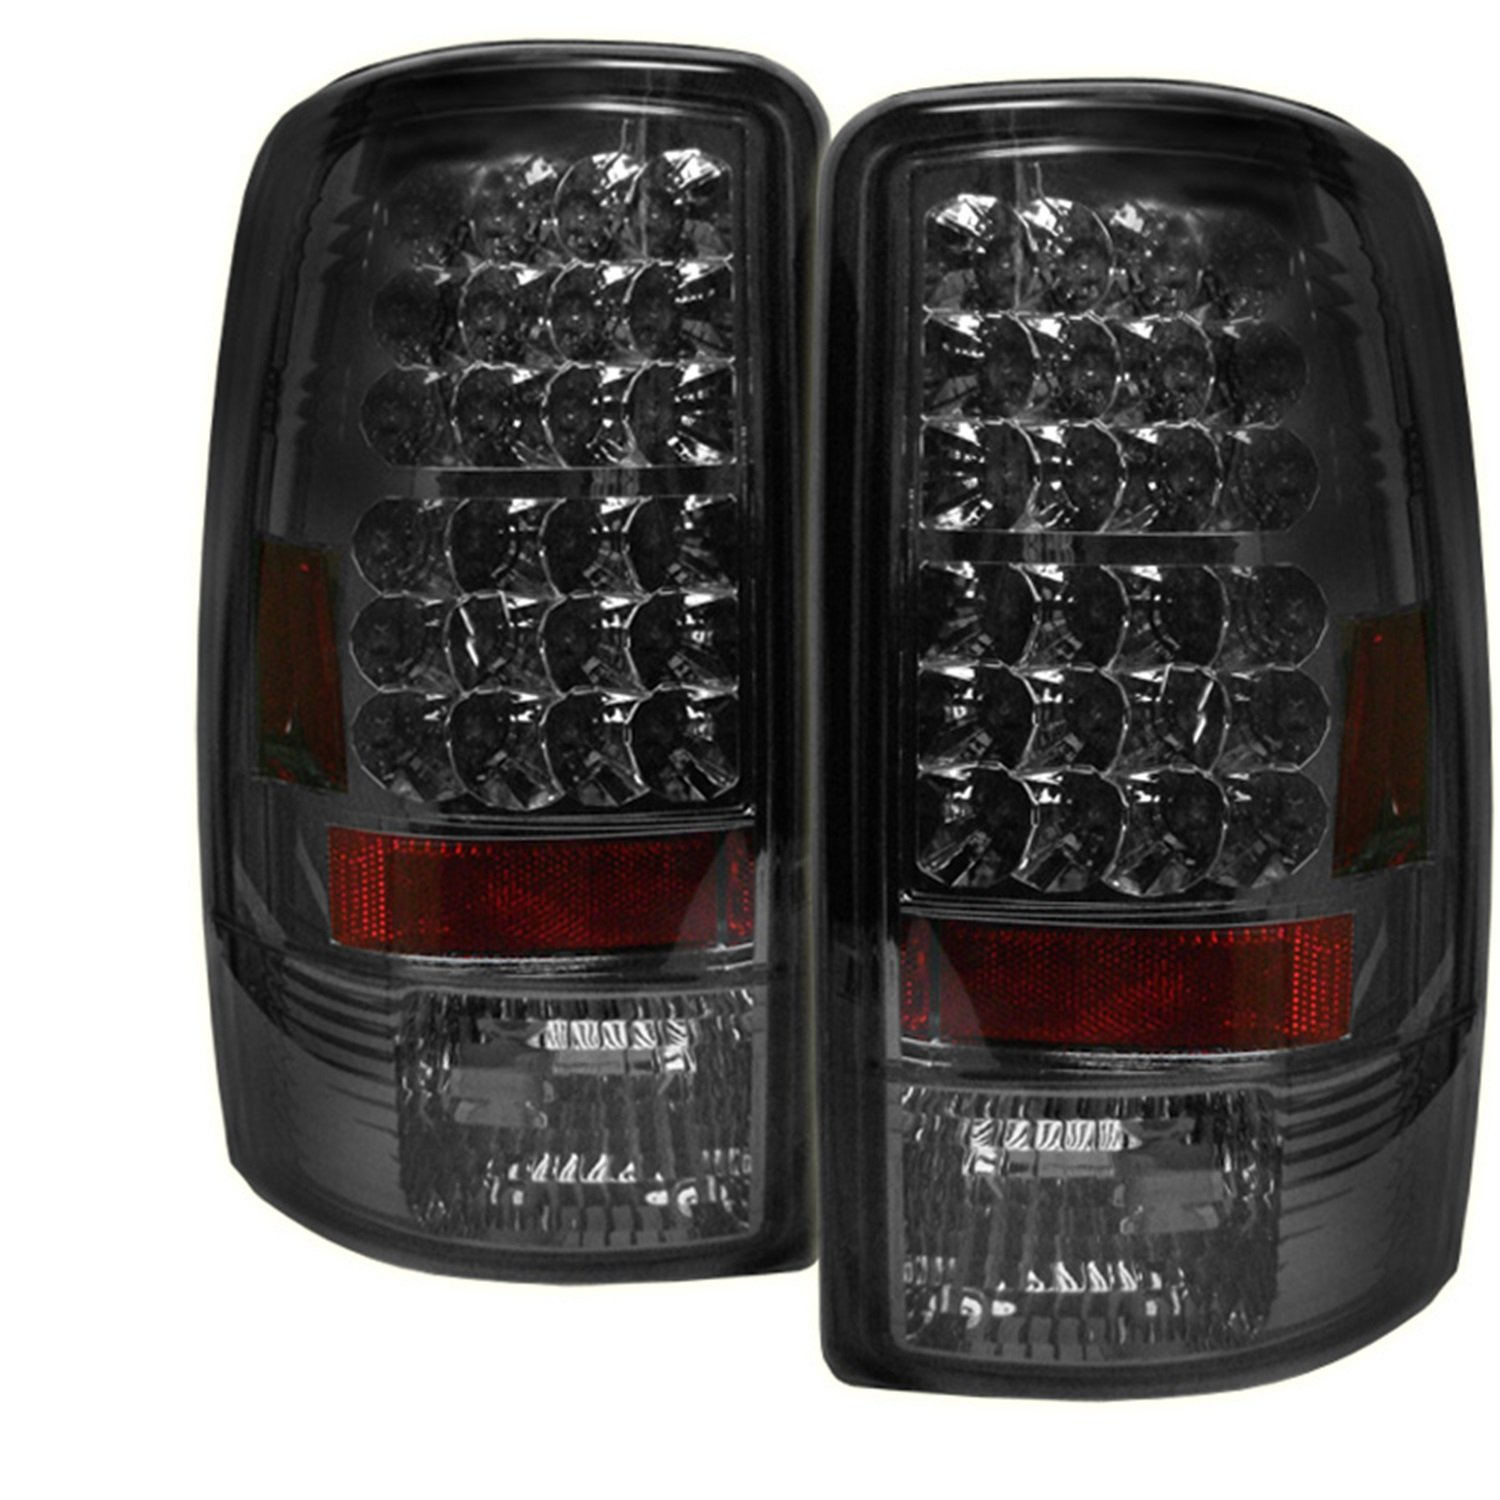 71Z%2BuUEvNaL._SL1500_ amazon com spyder auto chevy suburban tahoe 1500 2500 gmc yukon 2005 GMC Yukon XL at virtualis.co